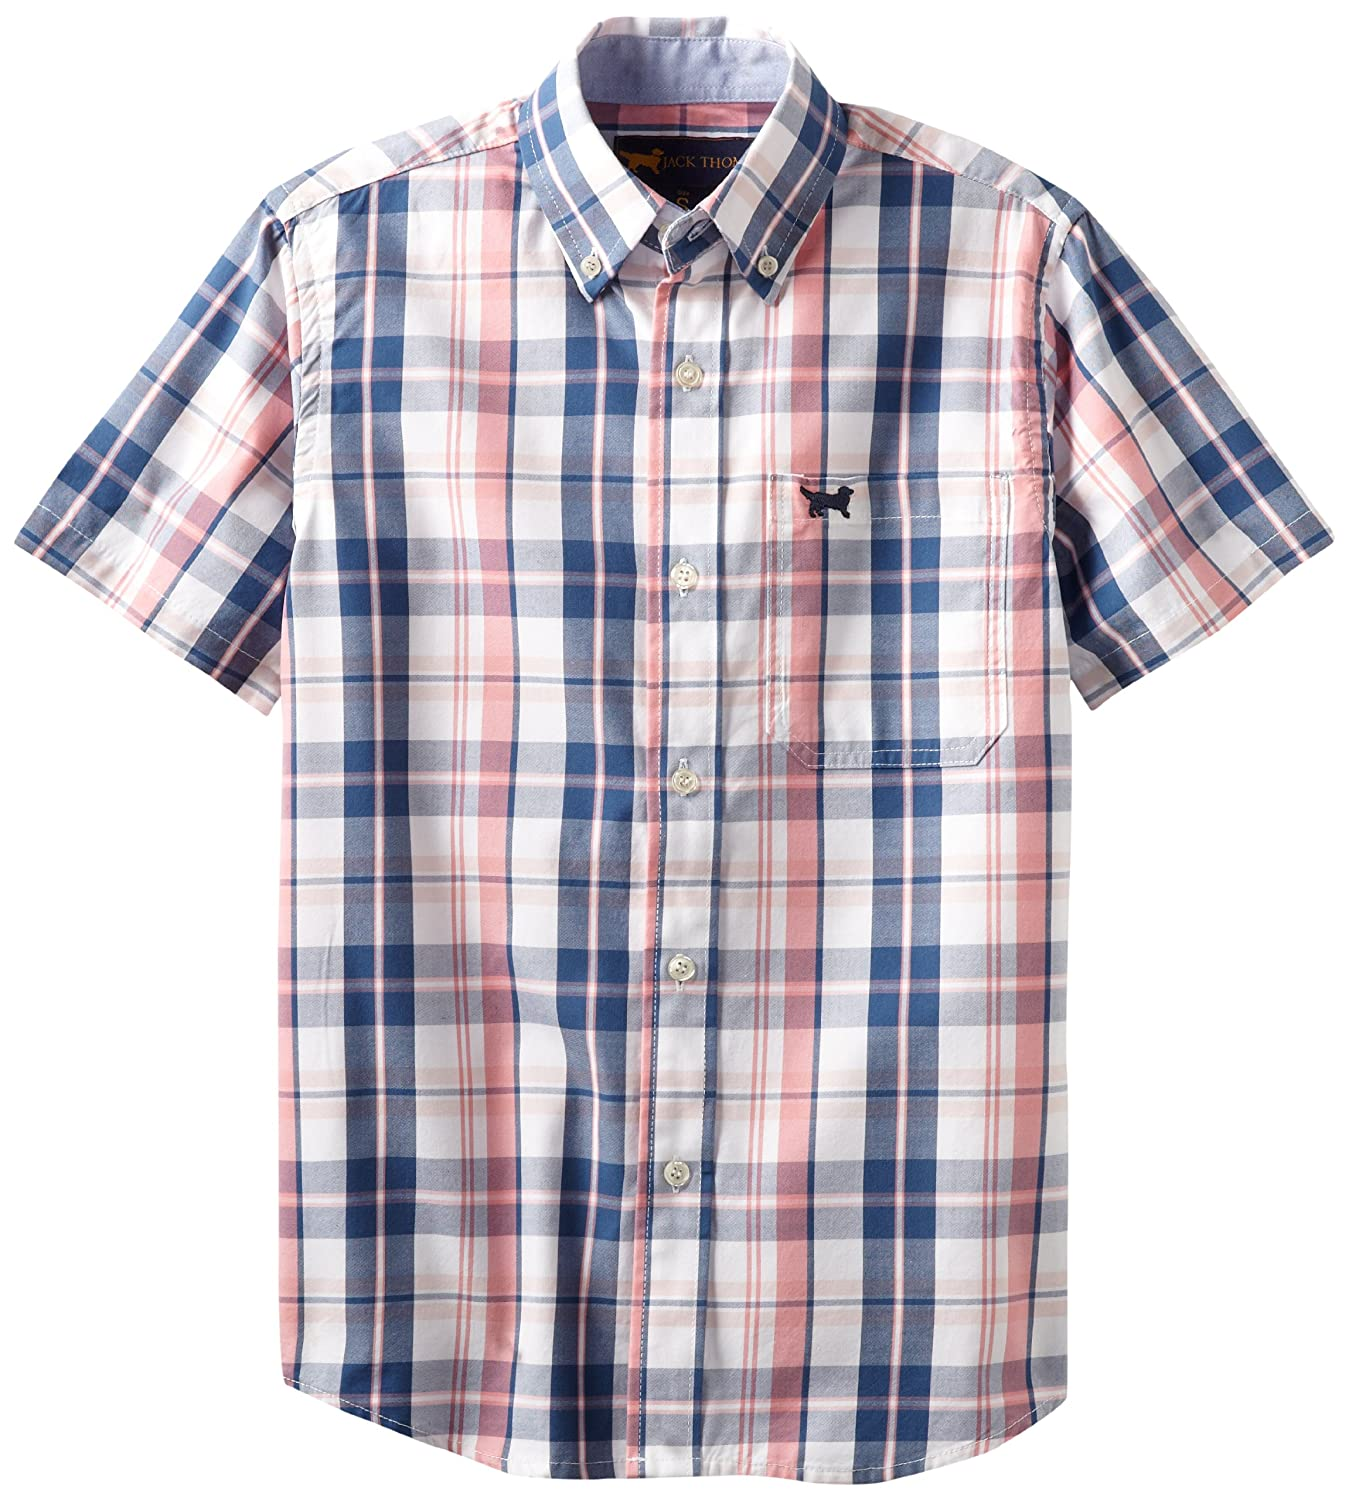 Wes and Willy Big Boys Short Sleeve Pink Plaid Dress Shirt JT032B